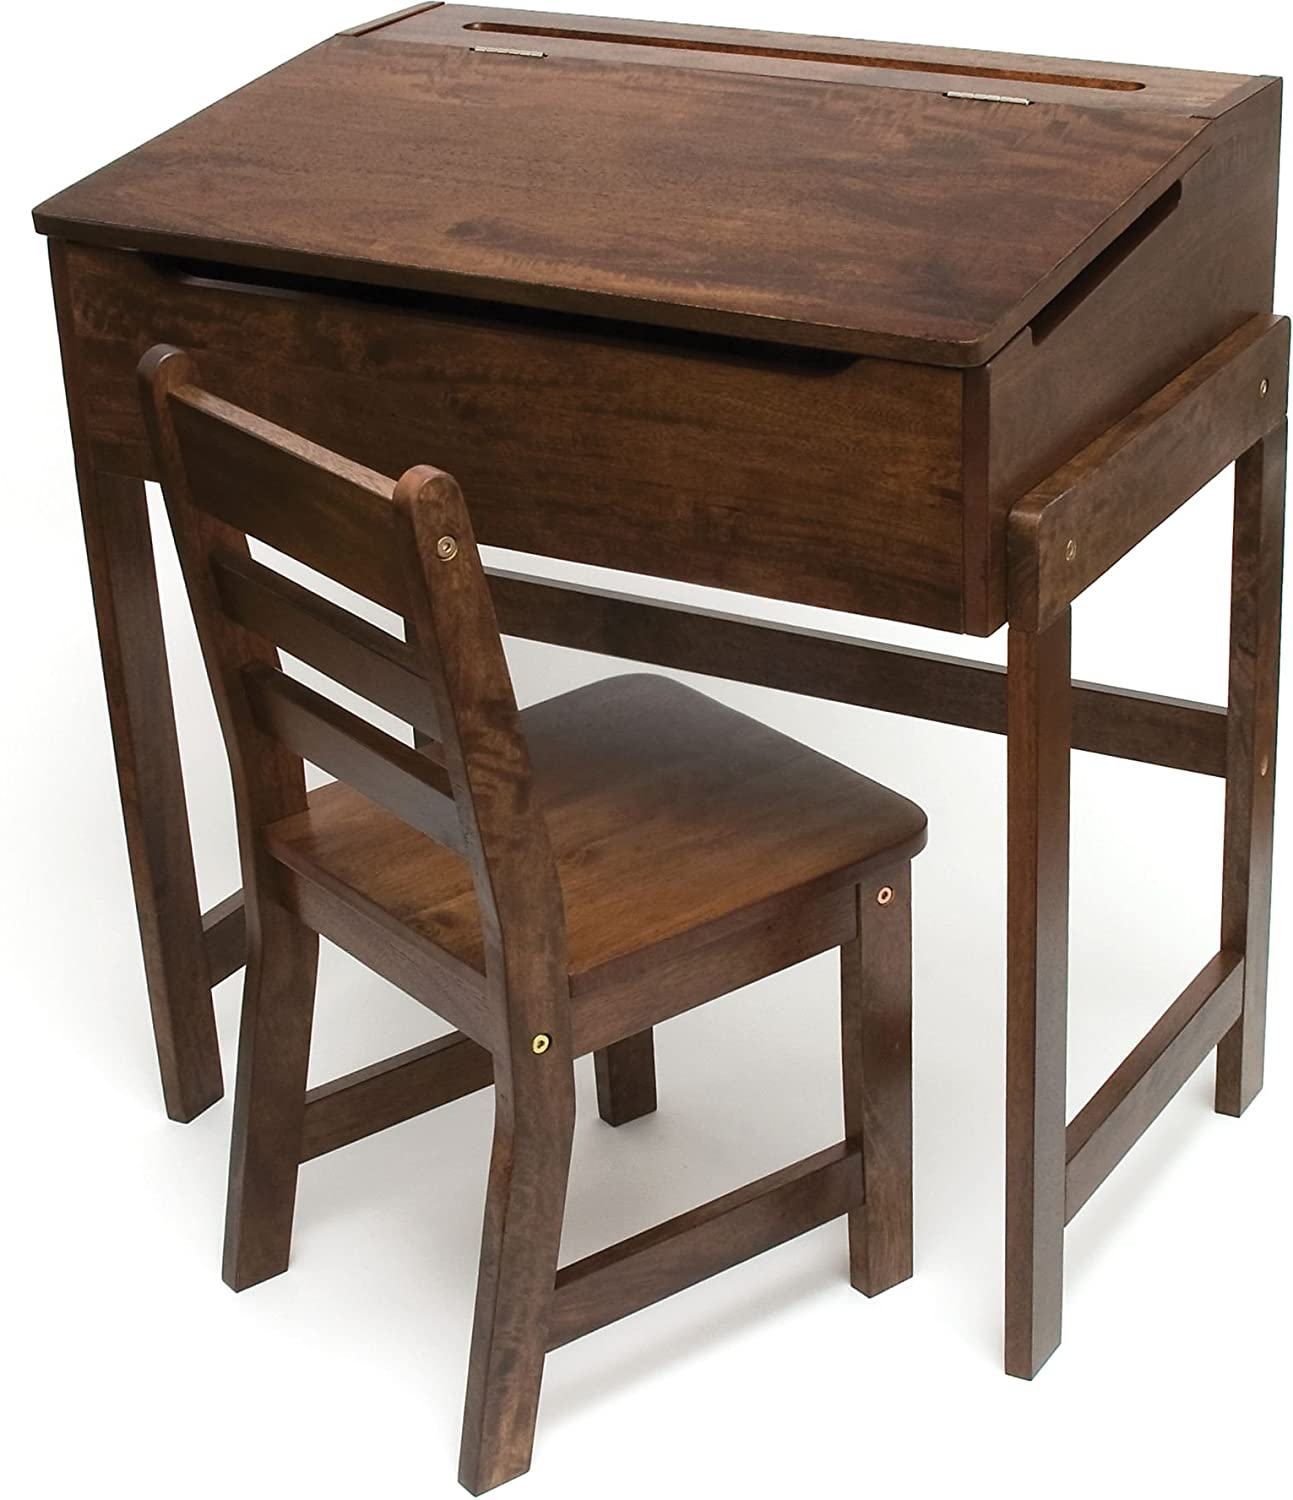 Lipper International Children's Slanted Walnut Top Desk & Chair